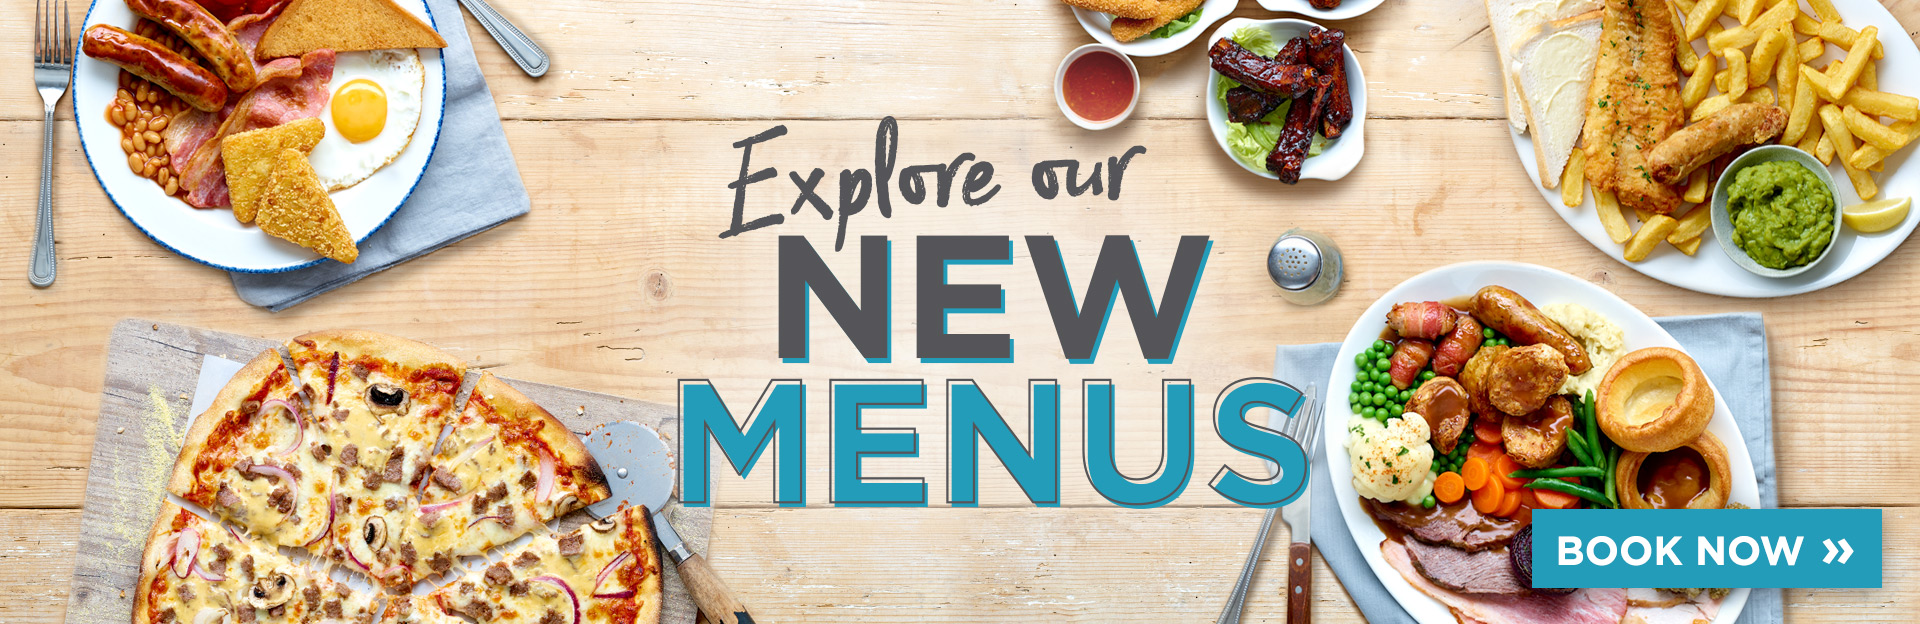 New menu at The Village Inn